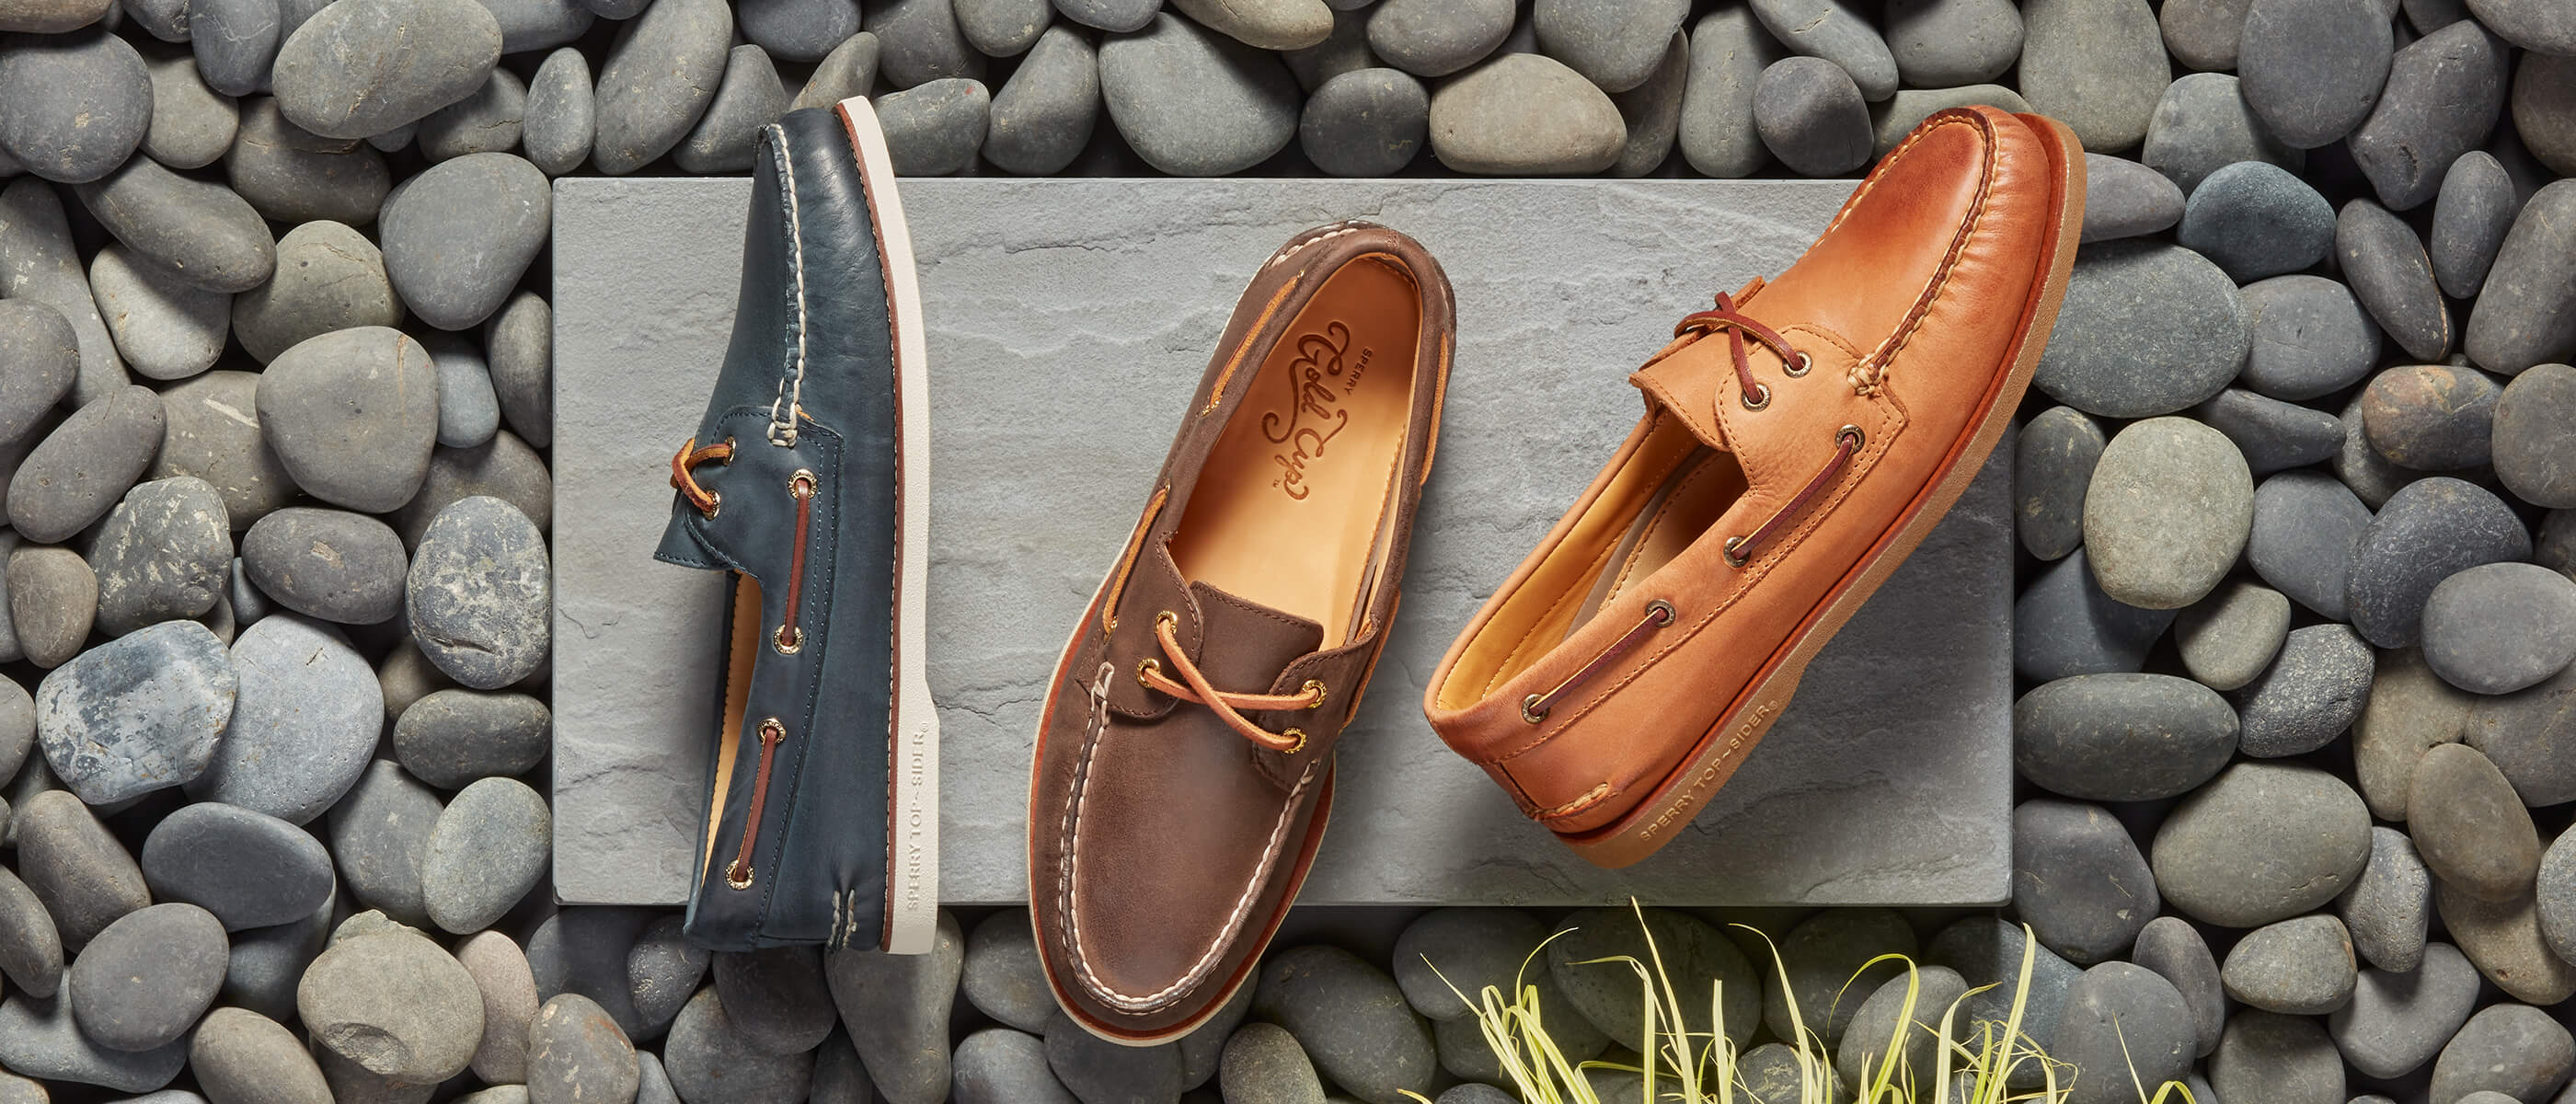 Three colors of Gold Cup boat shoes on a concrete slab surrounded by grey river stones and grass.